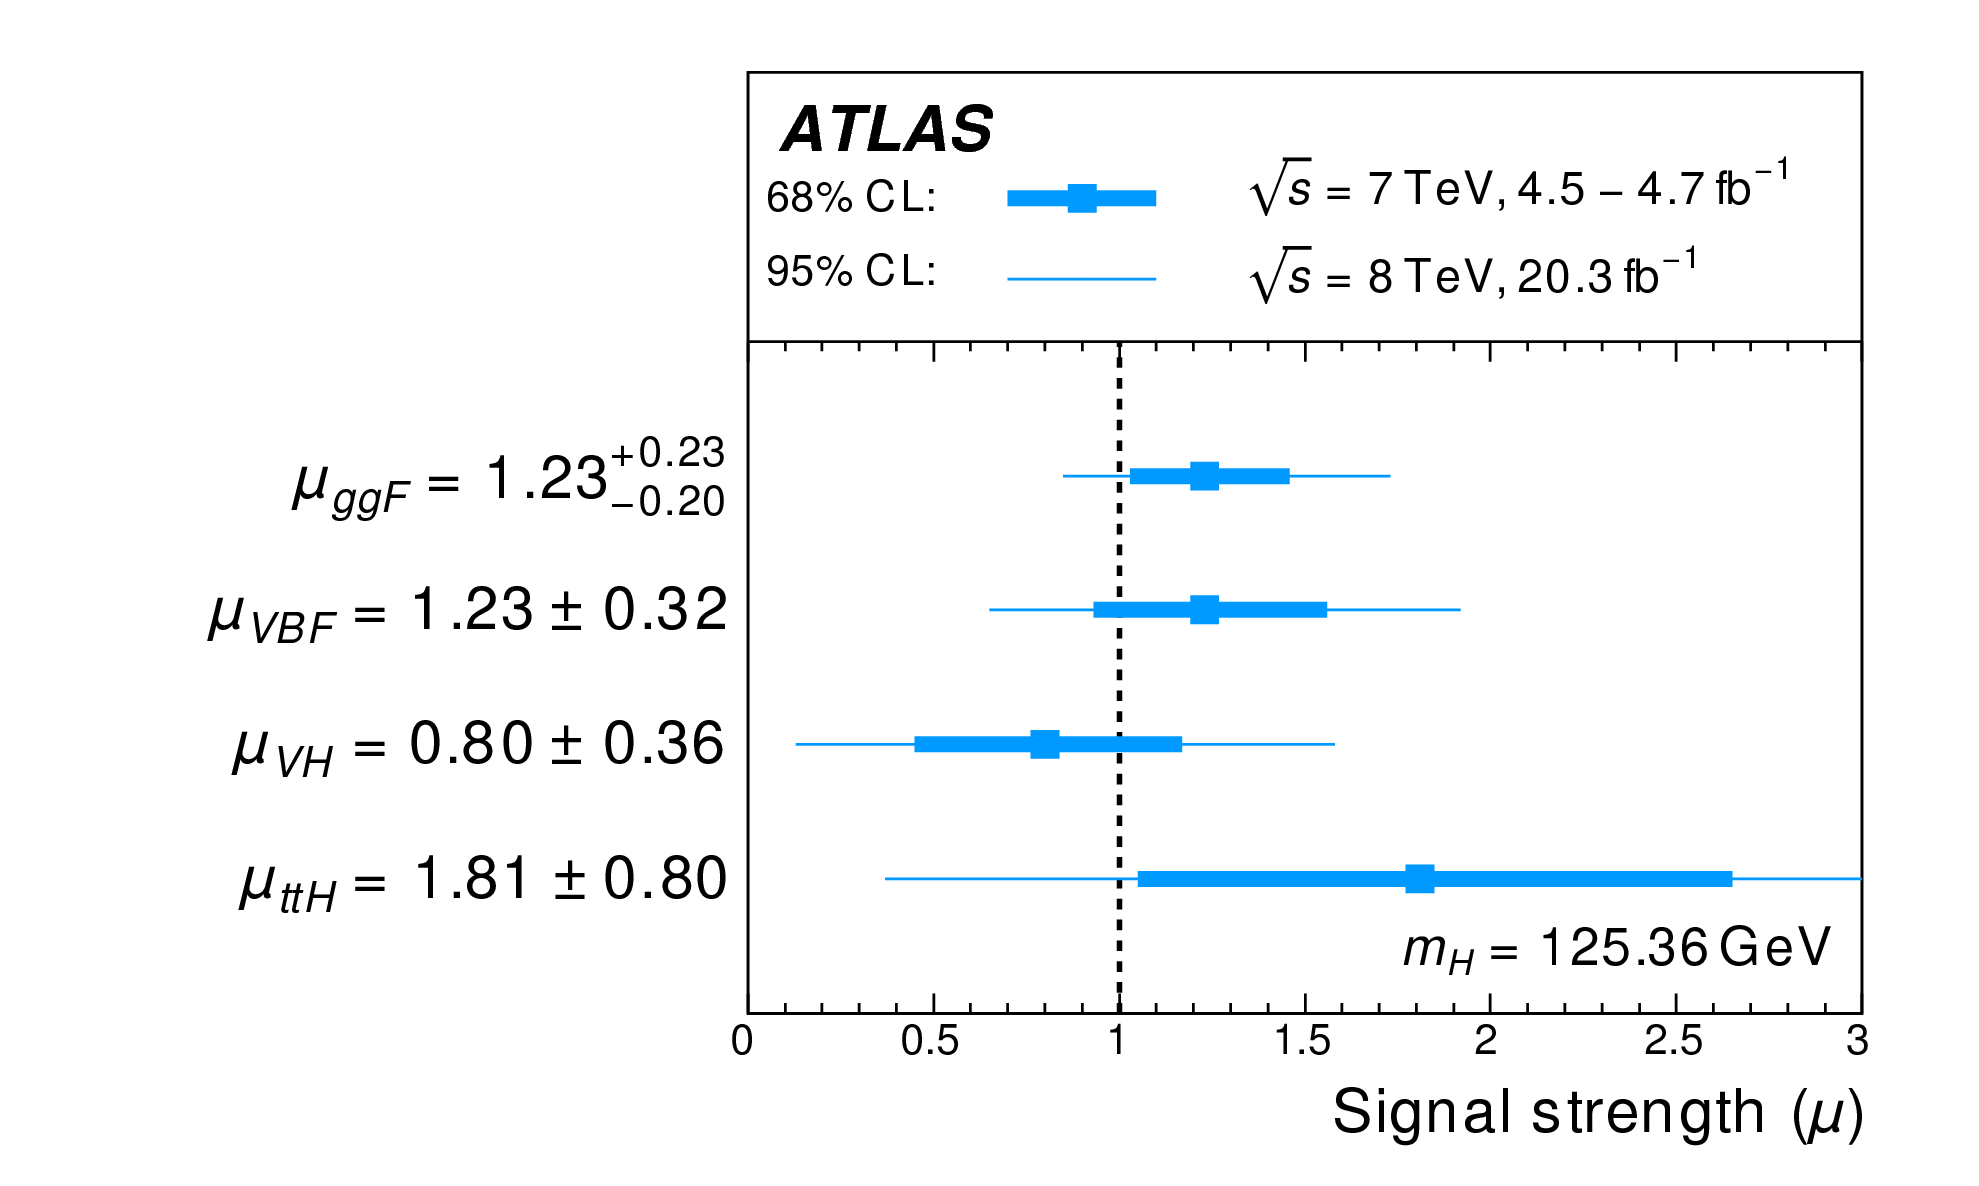 https://atlas.web.cern.ch/Atlas/GROUPS/PHYSICS/CombinedSummaryPlots/HIGGS/ATLAS_HIGGS3910_muprod_Summary/ATLAS_HIGGS3910_muprod_Summary.png